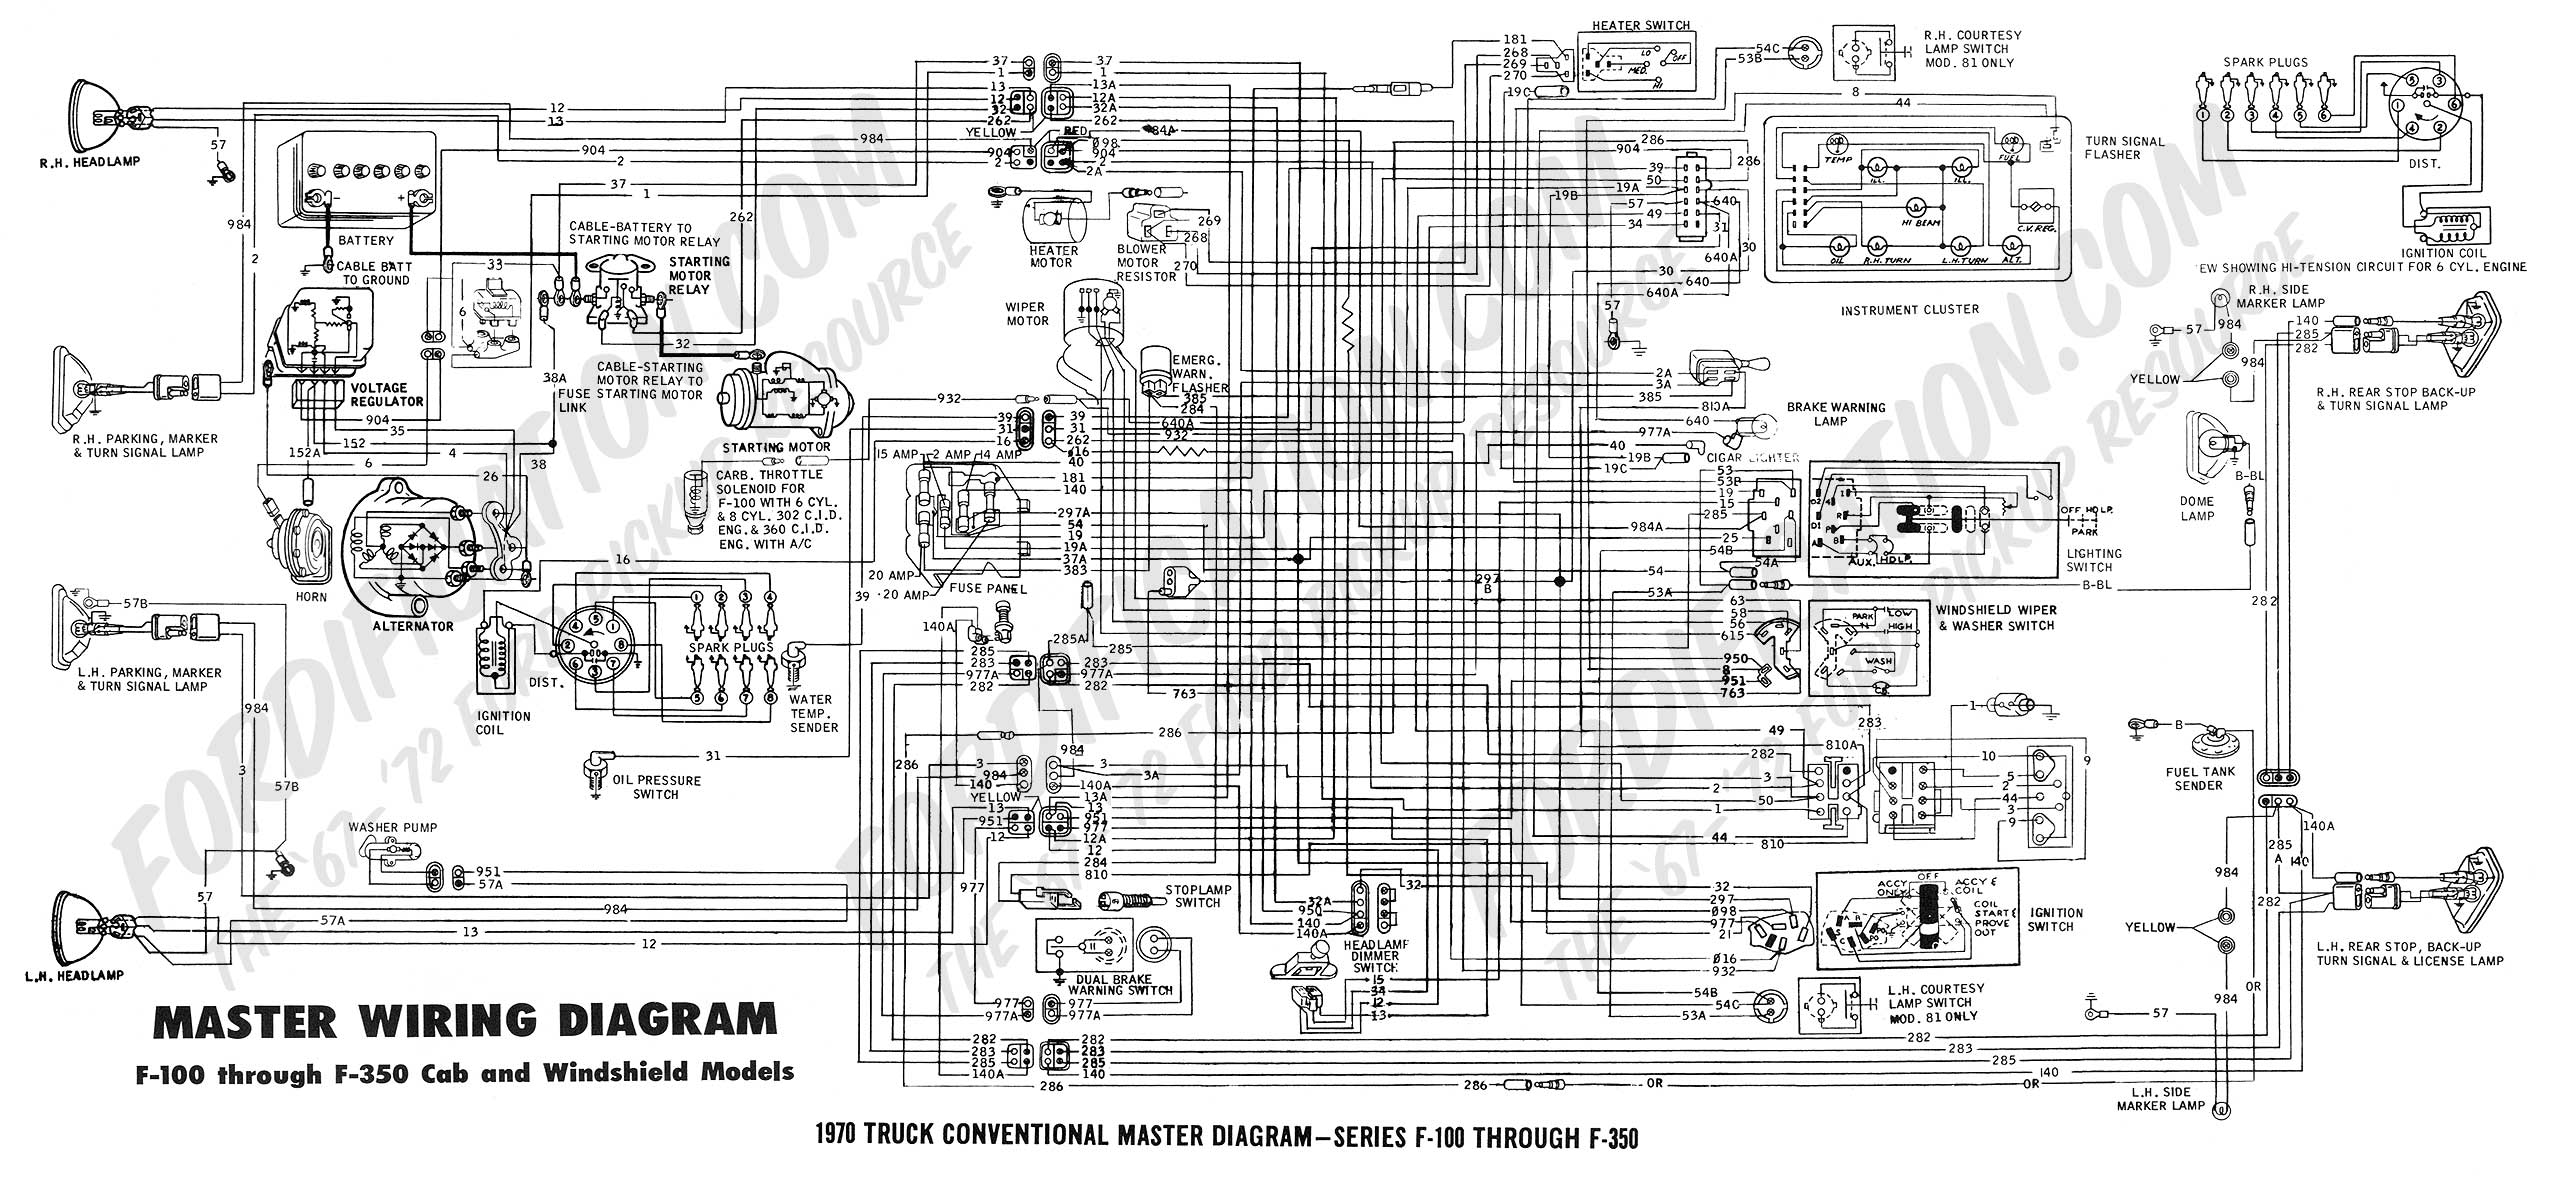 1975 ford f 250 wiring - wiring diagram schema drab-energy -  drab-energy.atmosphereconcept.it  atmosphereconcept.it